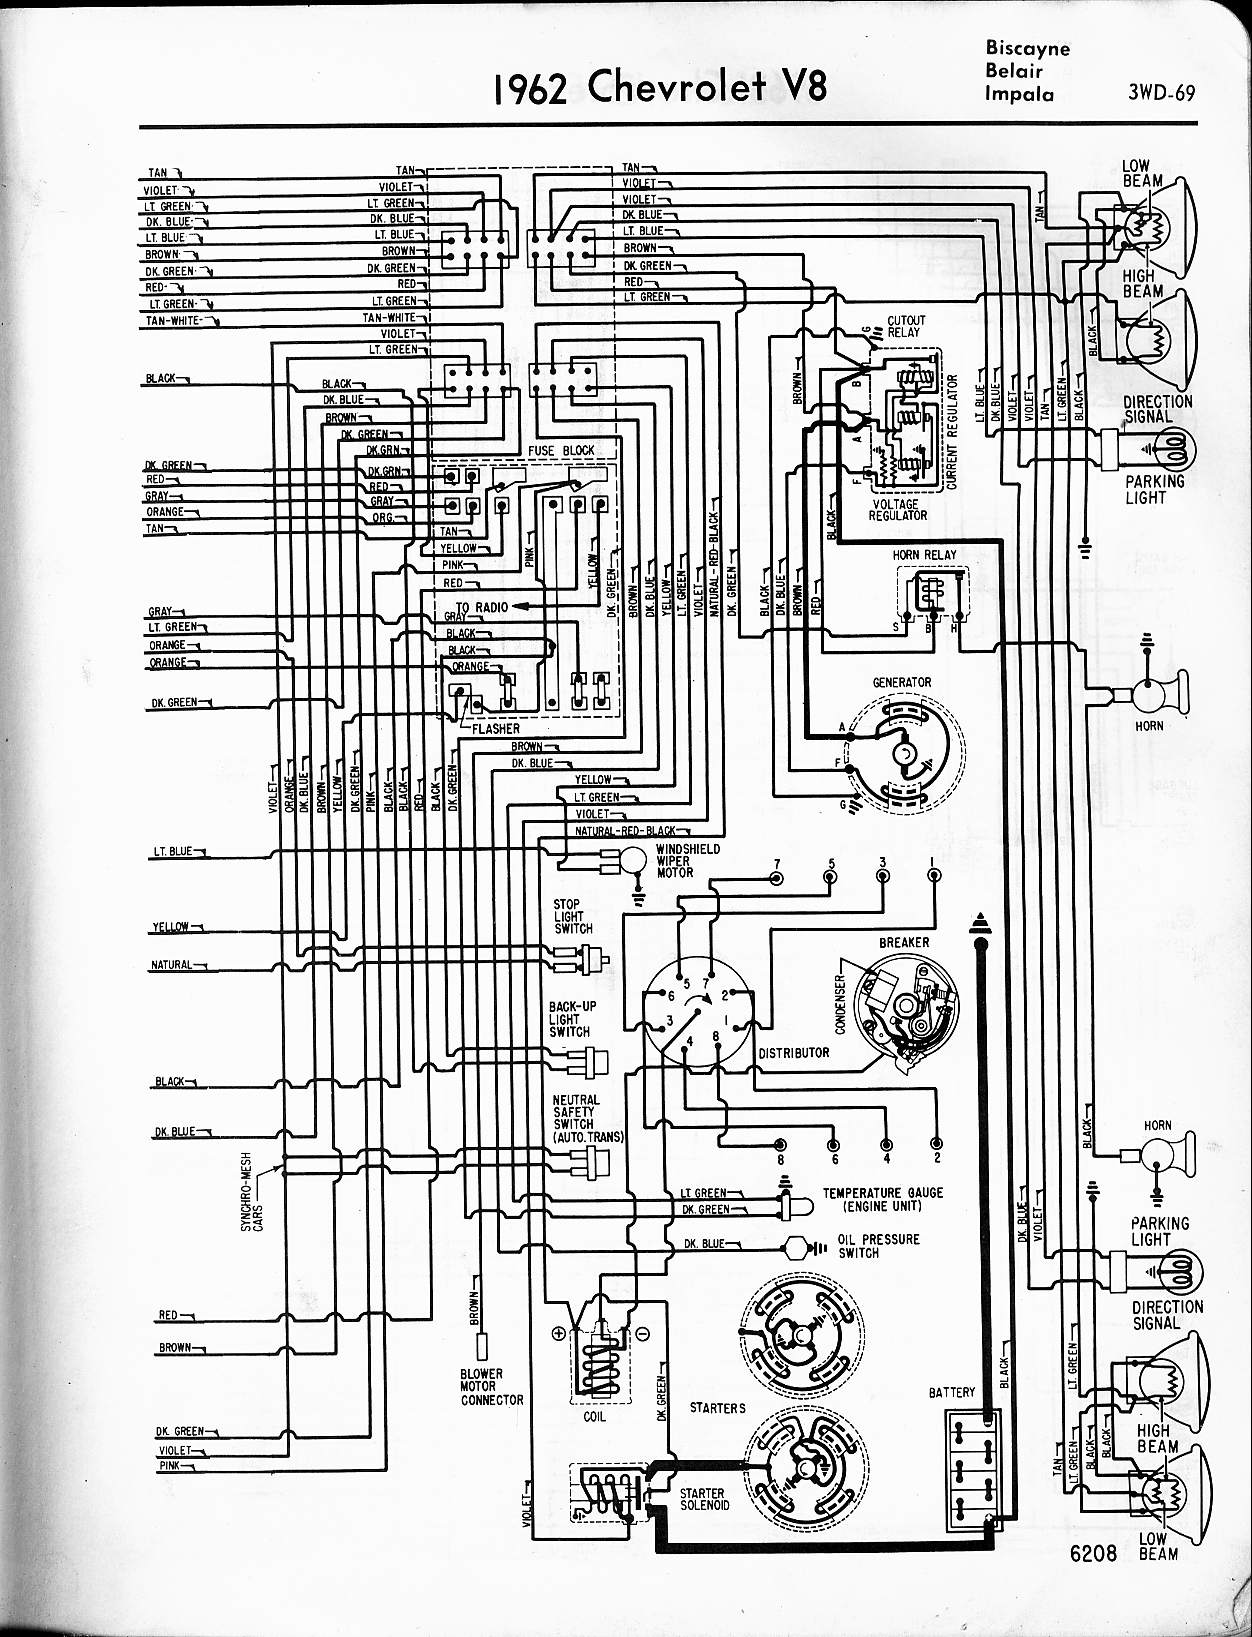 57 - 65 Chevy Wiring Diagrams Wiring Schematic on ignition schematics, home wiring, amplifier schematics, earthing system, residual-current device, transmission schematics, computer schematics, wire schematics, circuit diagram, knob and tube wiring, electrical wiring, distribution board, national electrical code, junction box, ground and neutral, ring circuit, electrical conduit, electrical wiring in north america, engineering schematics, electronics schematics, electrical schematics, piping schematics, tube amp schematics, circuit breaker, circuit schematics, generator schematics, power cable, plumbing schematics, design schematics, engine schematics, motor schematics, transformer schematics, light switch, ecu schematics, ac power plugs and sockets, three-phase electric power, ford diagrams schematics, ductwork schematics,